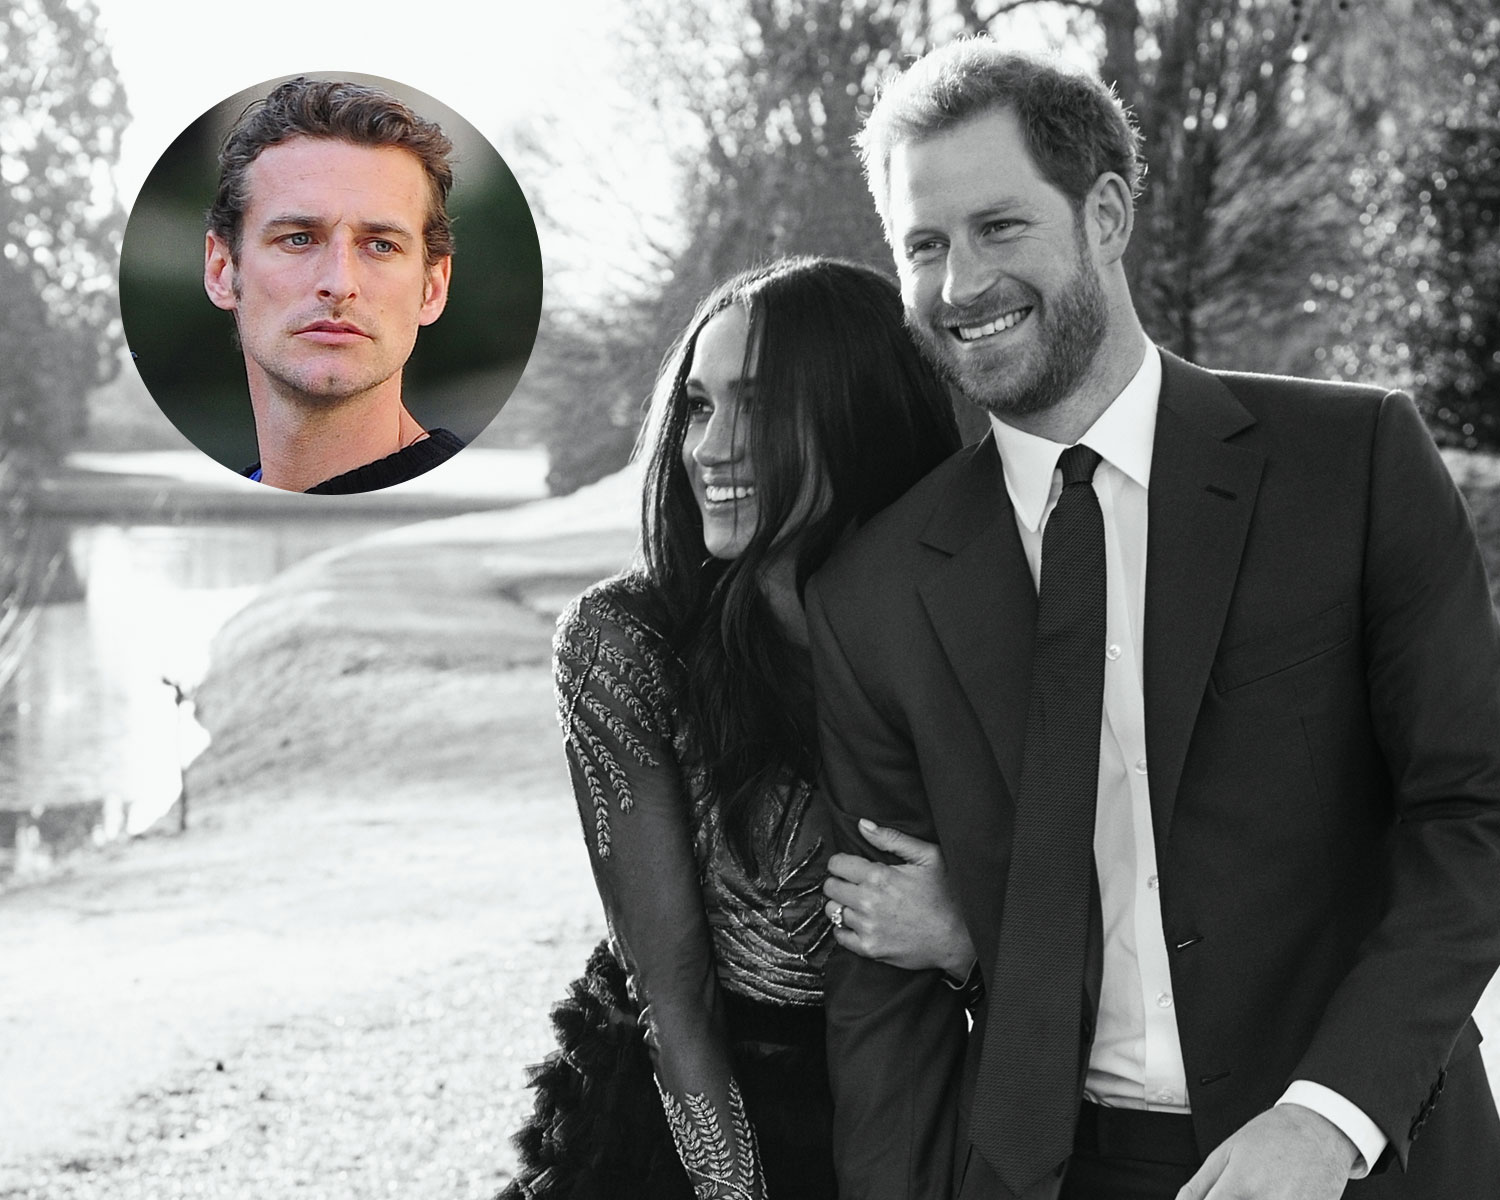 Meghan Markle Found Her Engagement Photographer In A Relatable Way